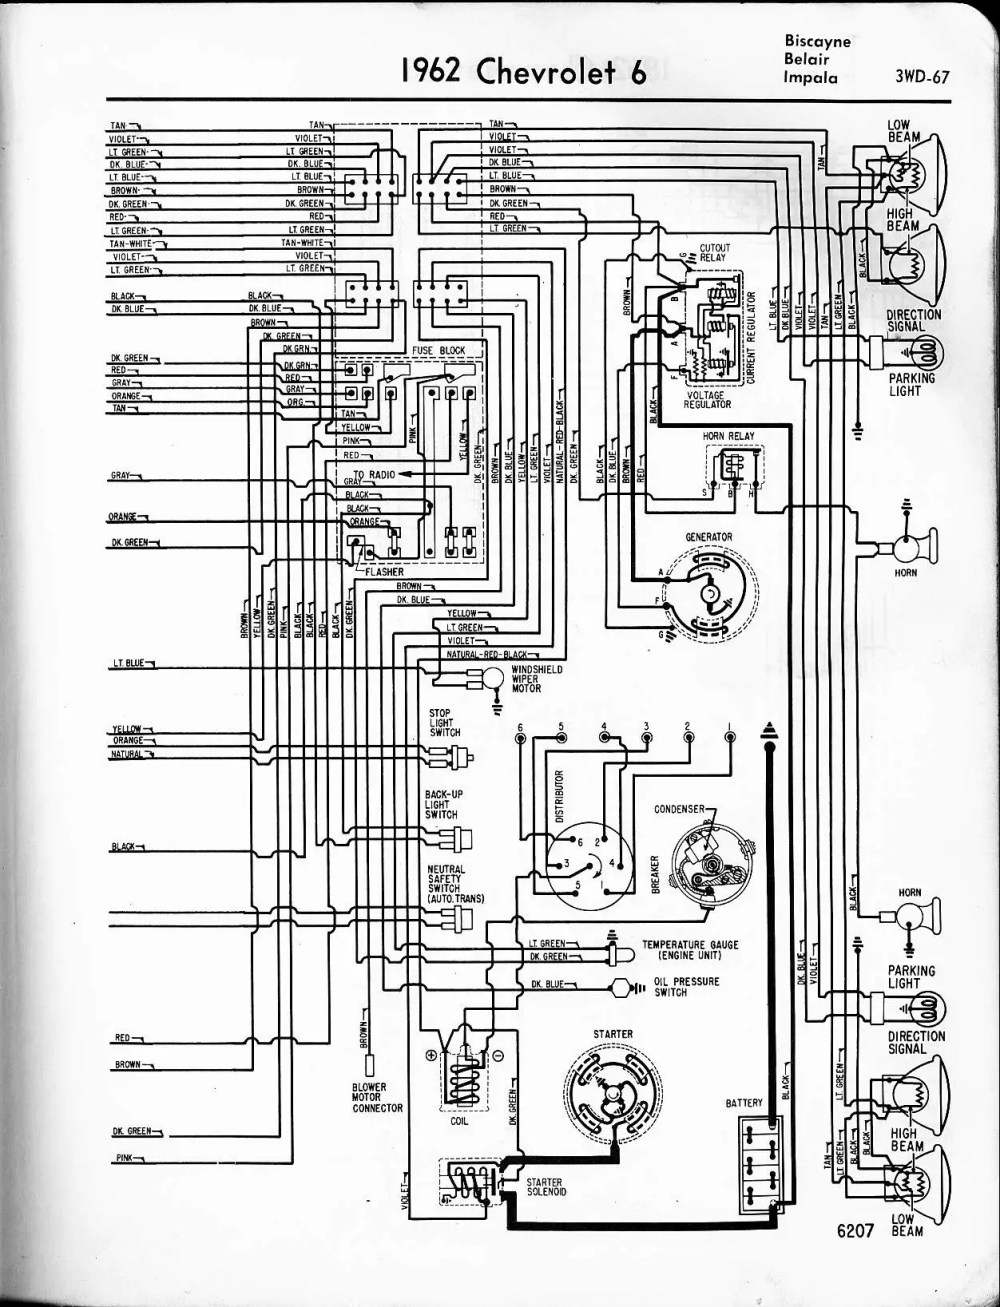 medium resolution of 69 chevrolet impala wiring diagram wiring library rh 46 bloxhuette de 64 chevrolet impala 70 chevrolet impala